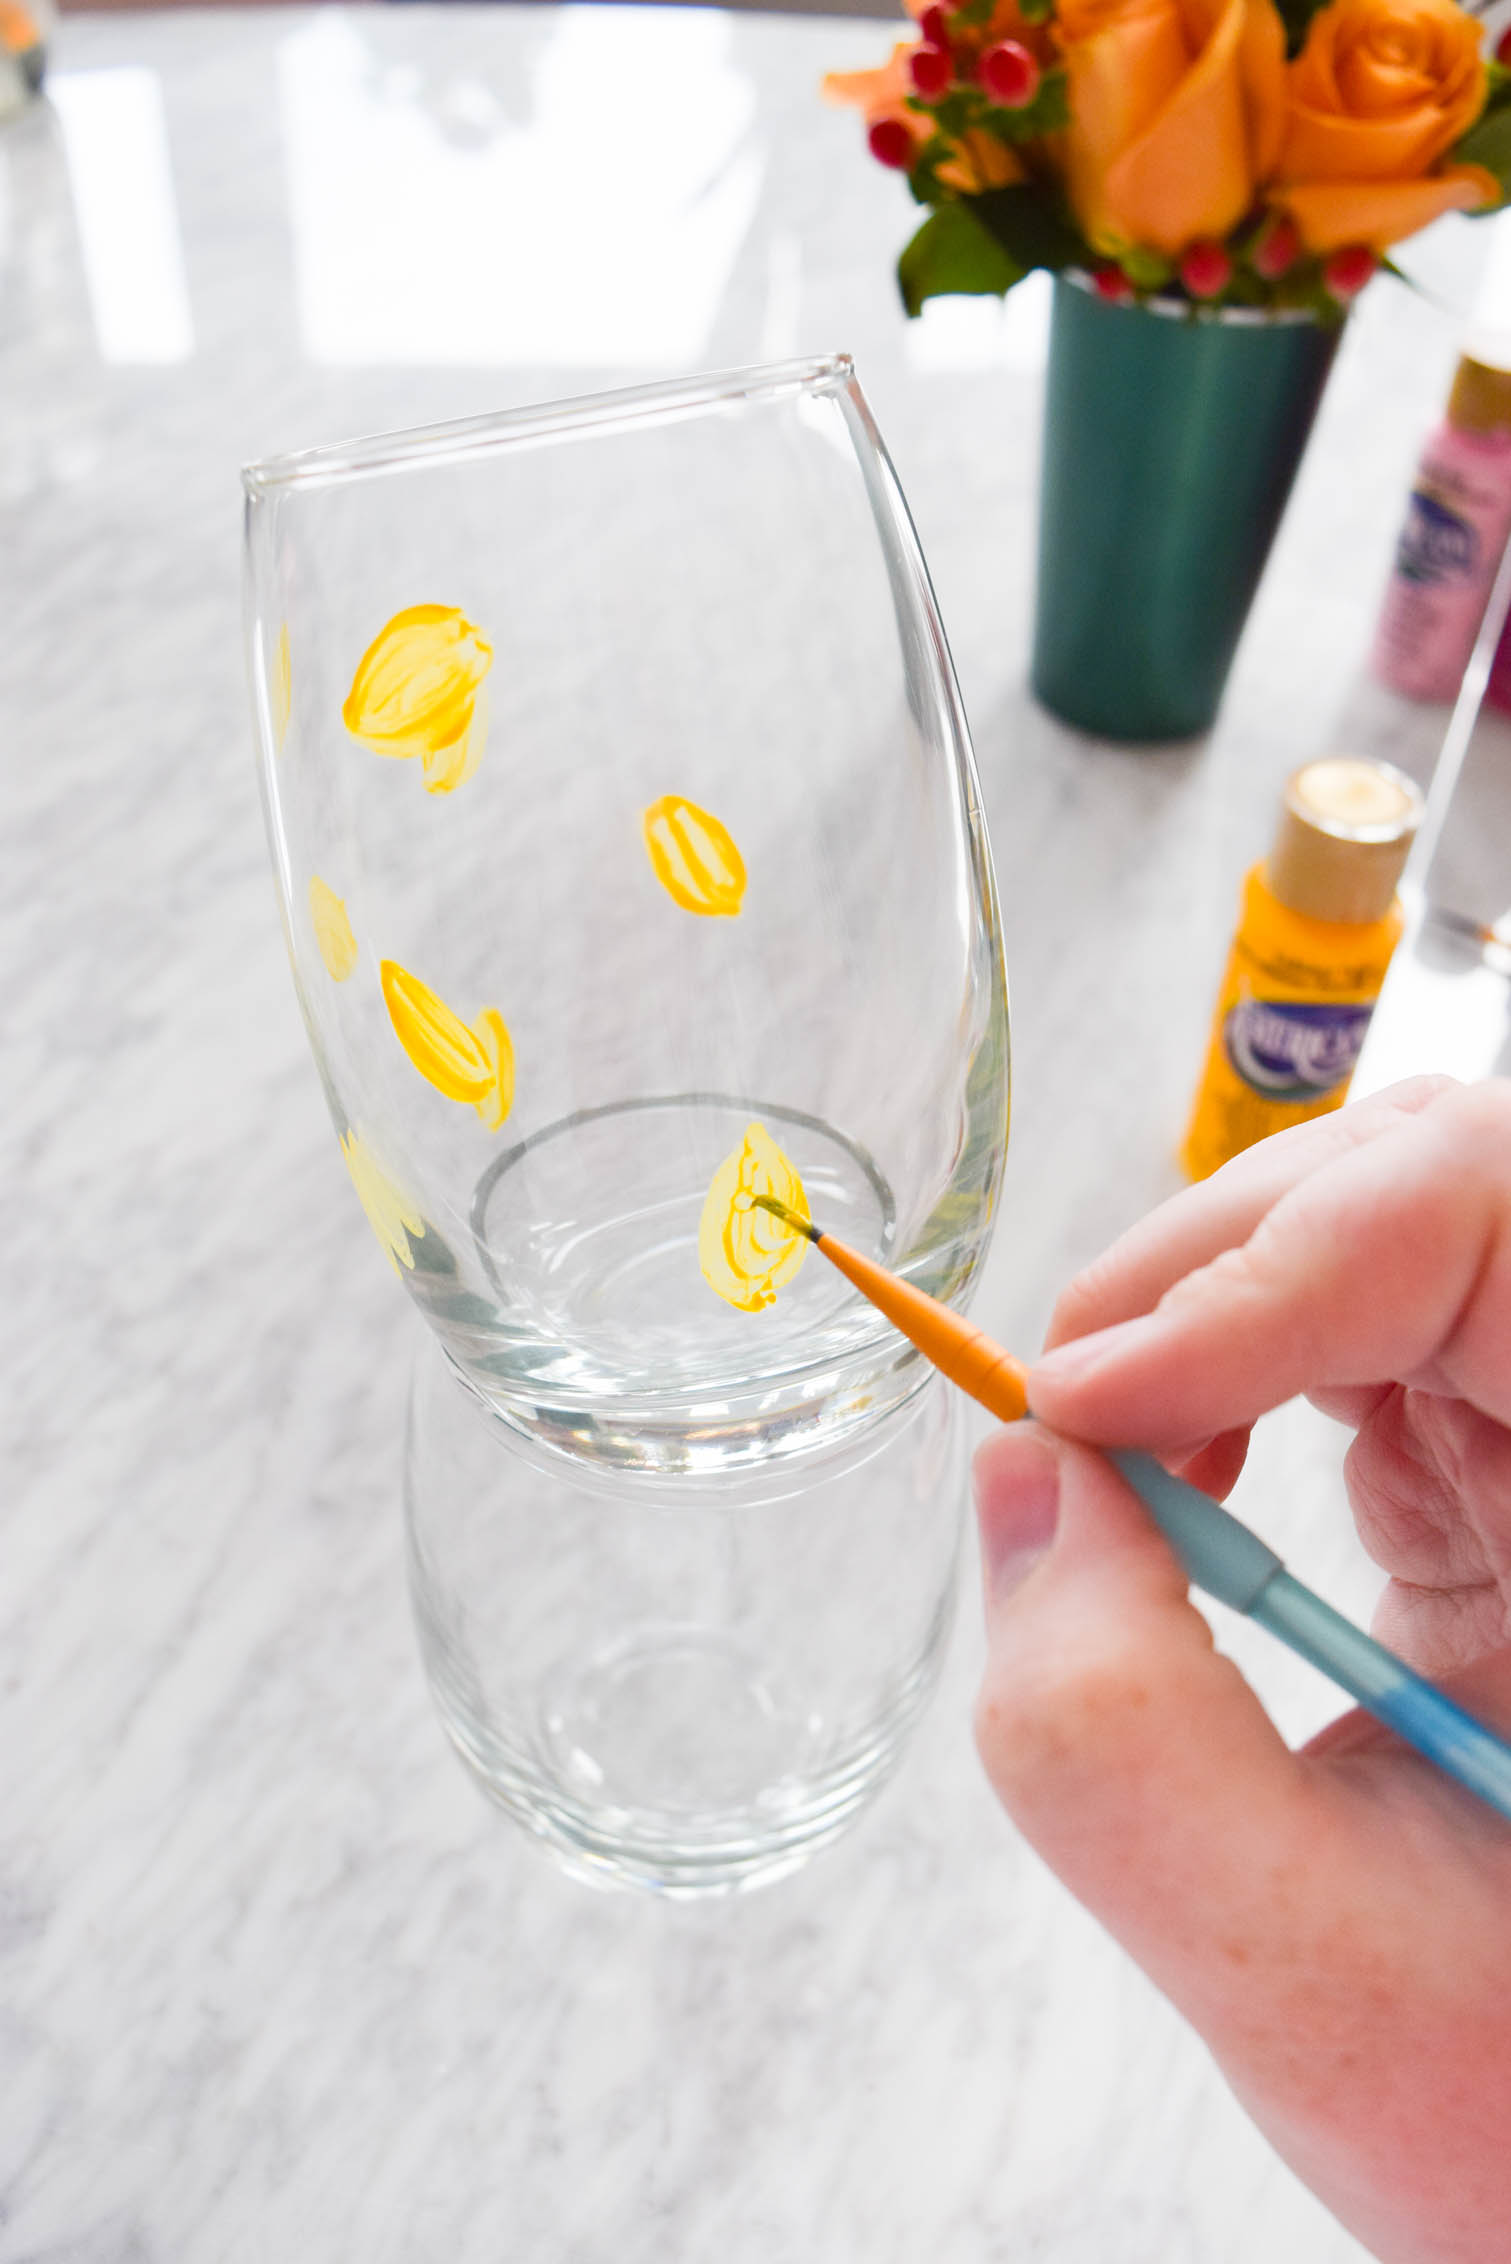 My DIY Painted Plaid & Lemon Glasses are the cutest thing you'll see all day. You can make your own summer drinkware with a retro and fun vibe, in just an afternoon.